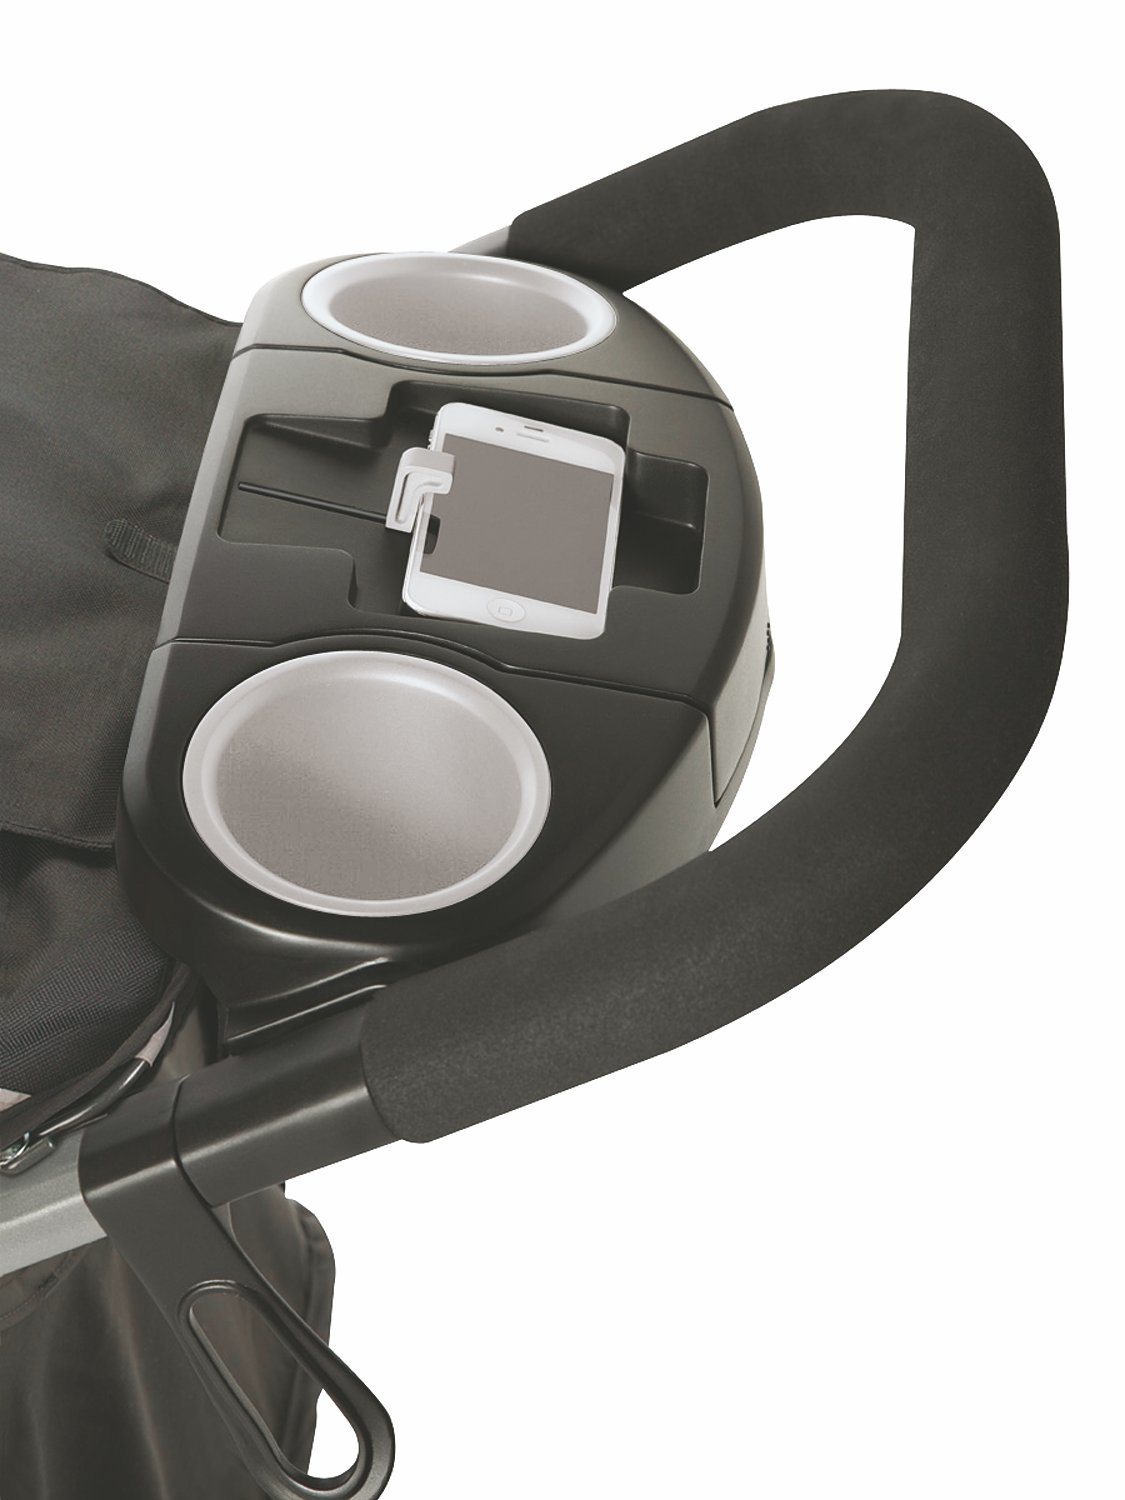 Graco Fastaction Fold Jogger Click Connect Stroller, Gotham by Graco (Image #5)